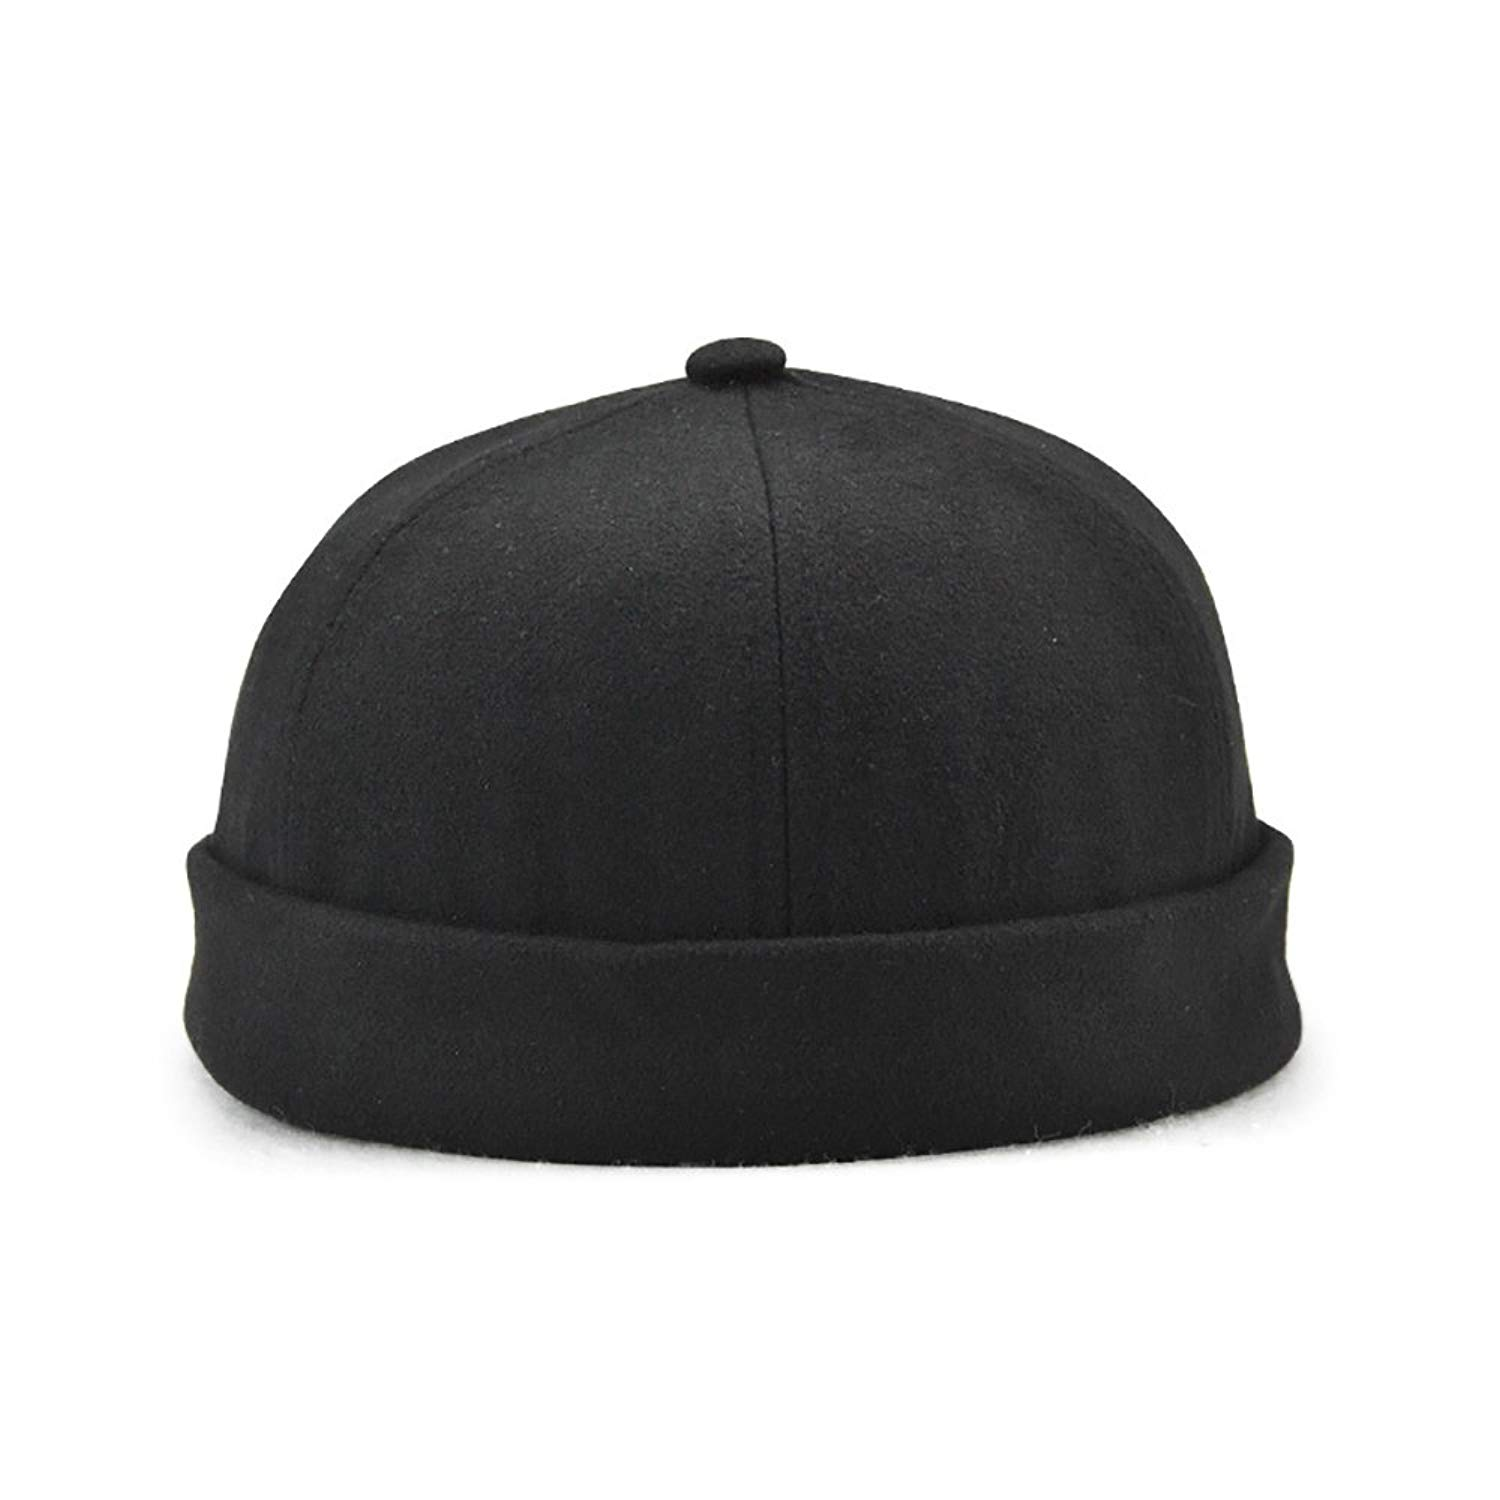 a0a5b239b Cheap Brimless Hat, find Brimless Hat deals on line at Alibaba.com